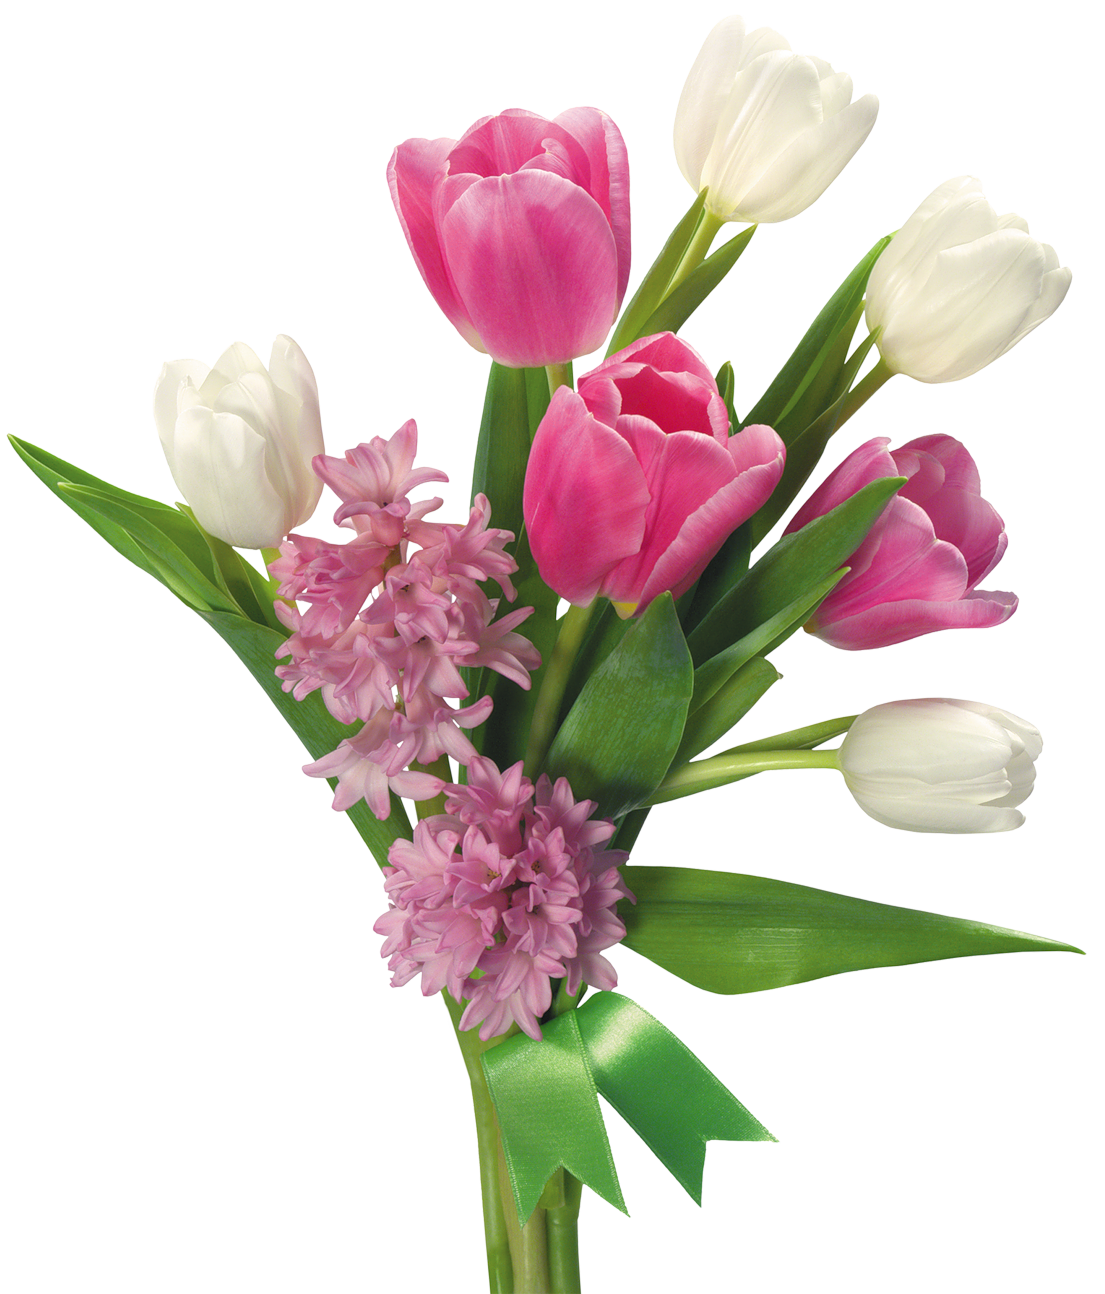 Spring Bouquet of Tulips and Hyacinths PNG Transparent